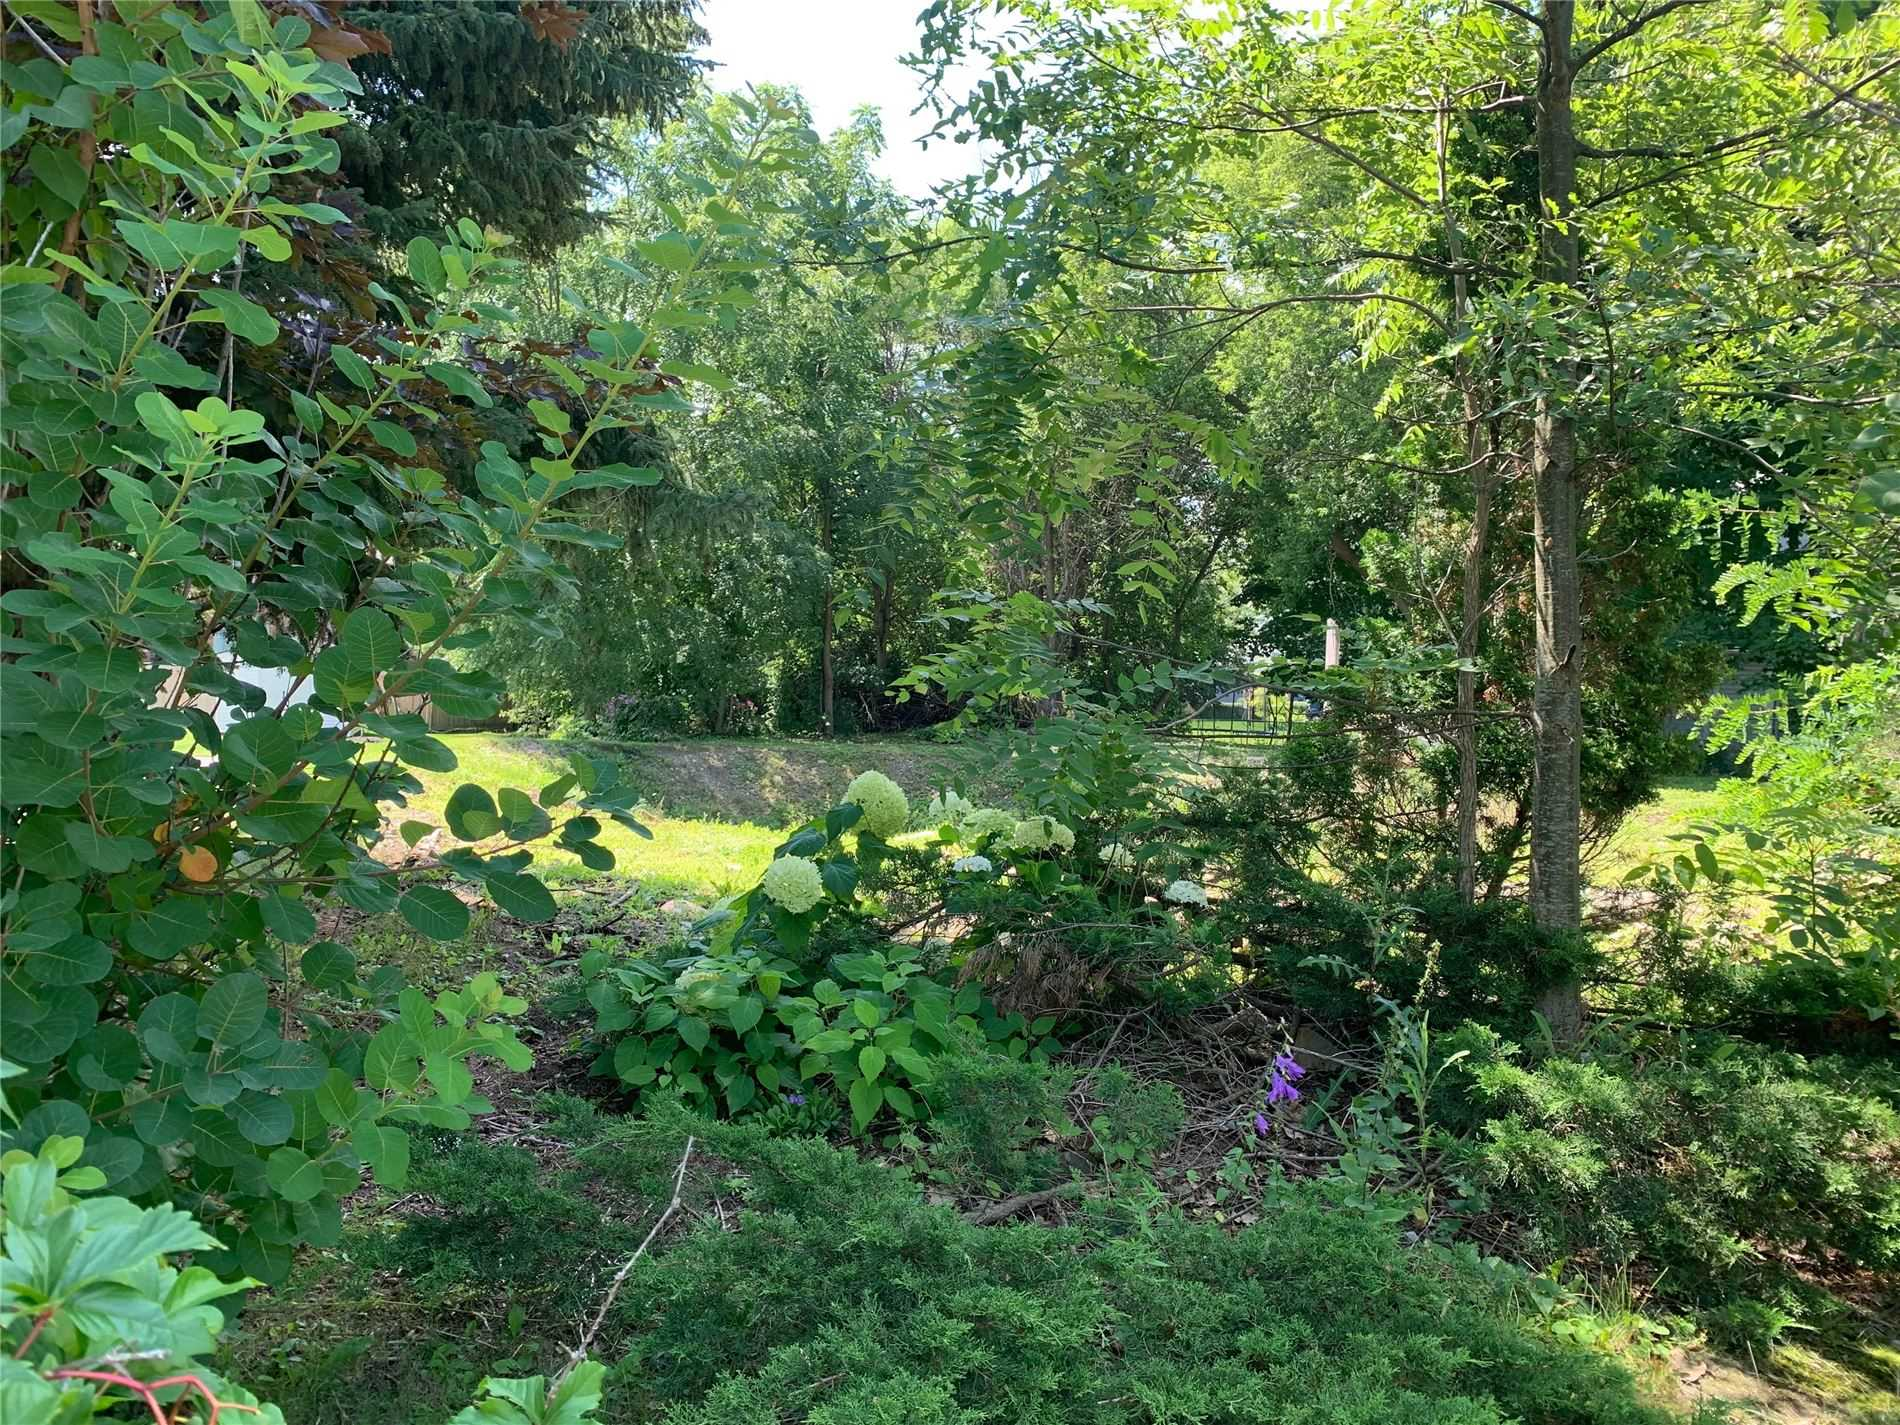 Vacant Land For Sale In East Gwillimbury